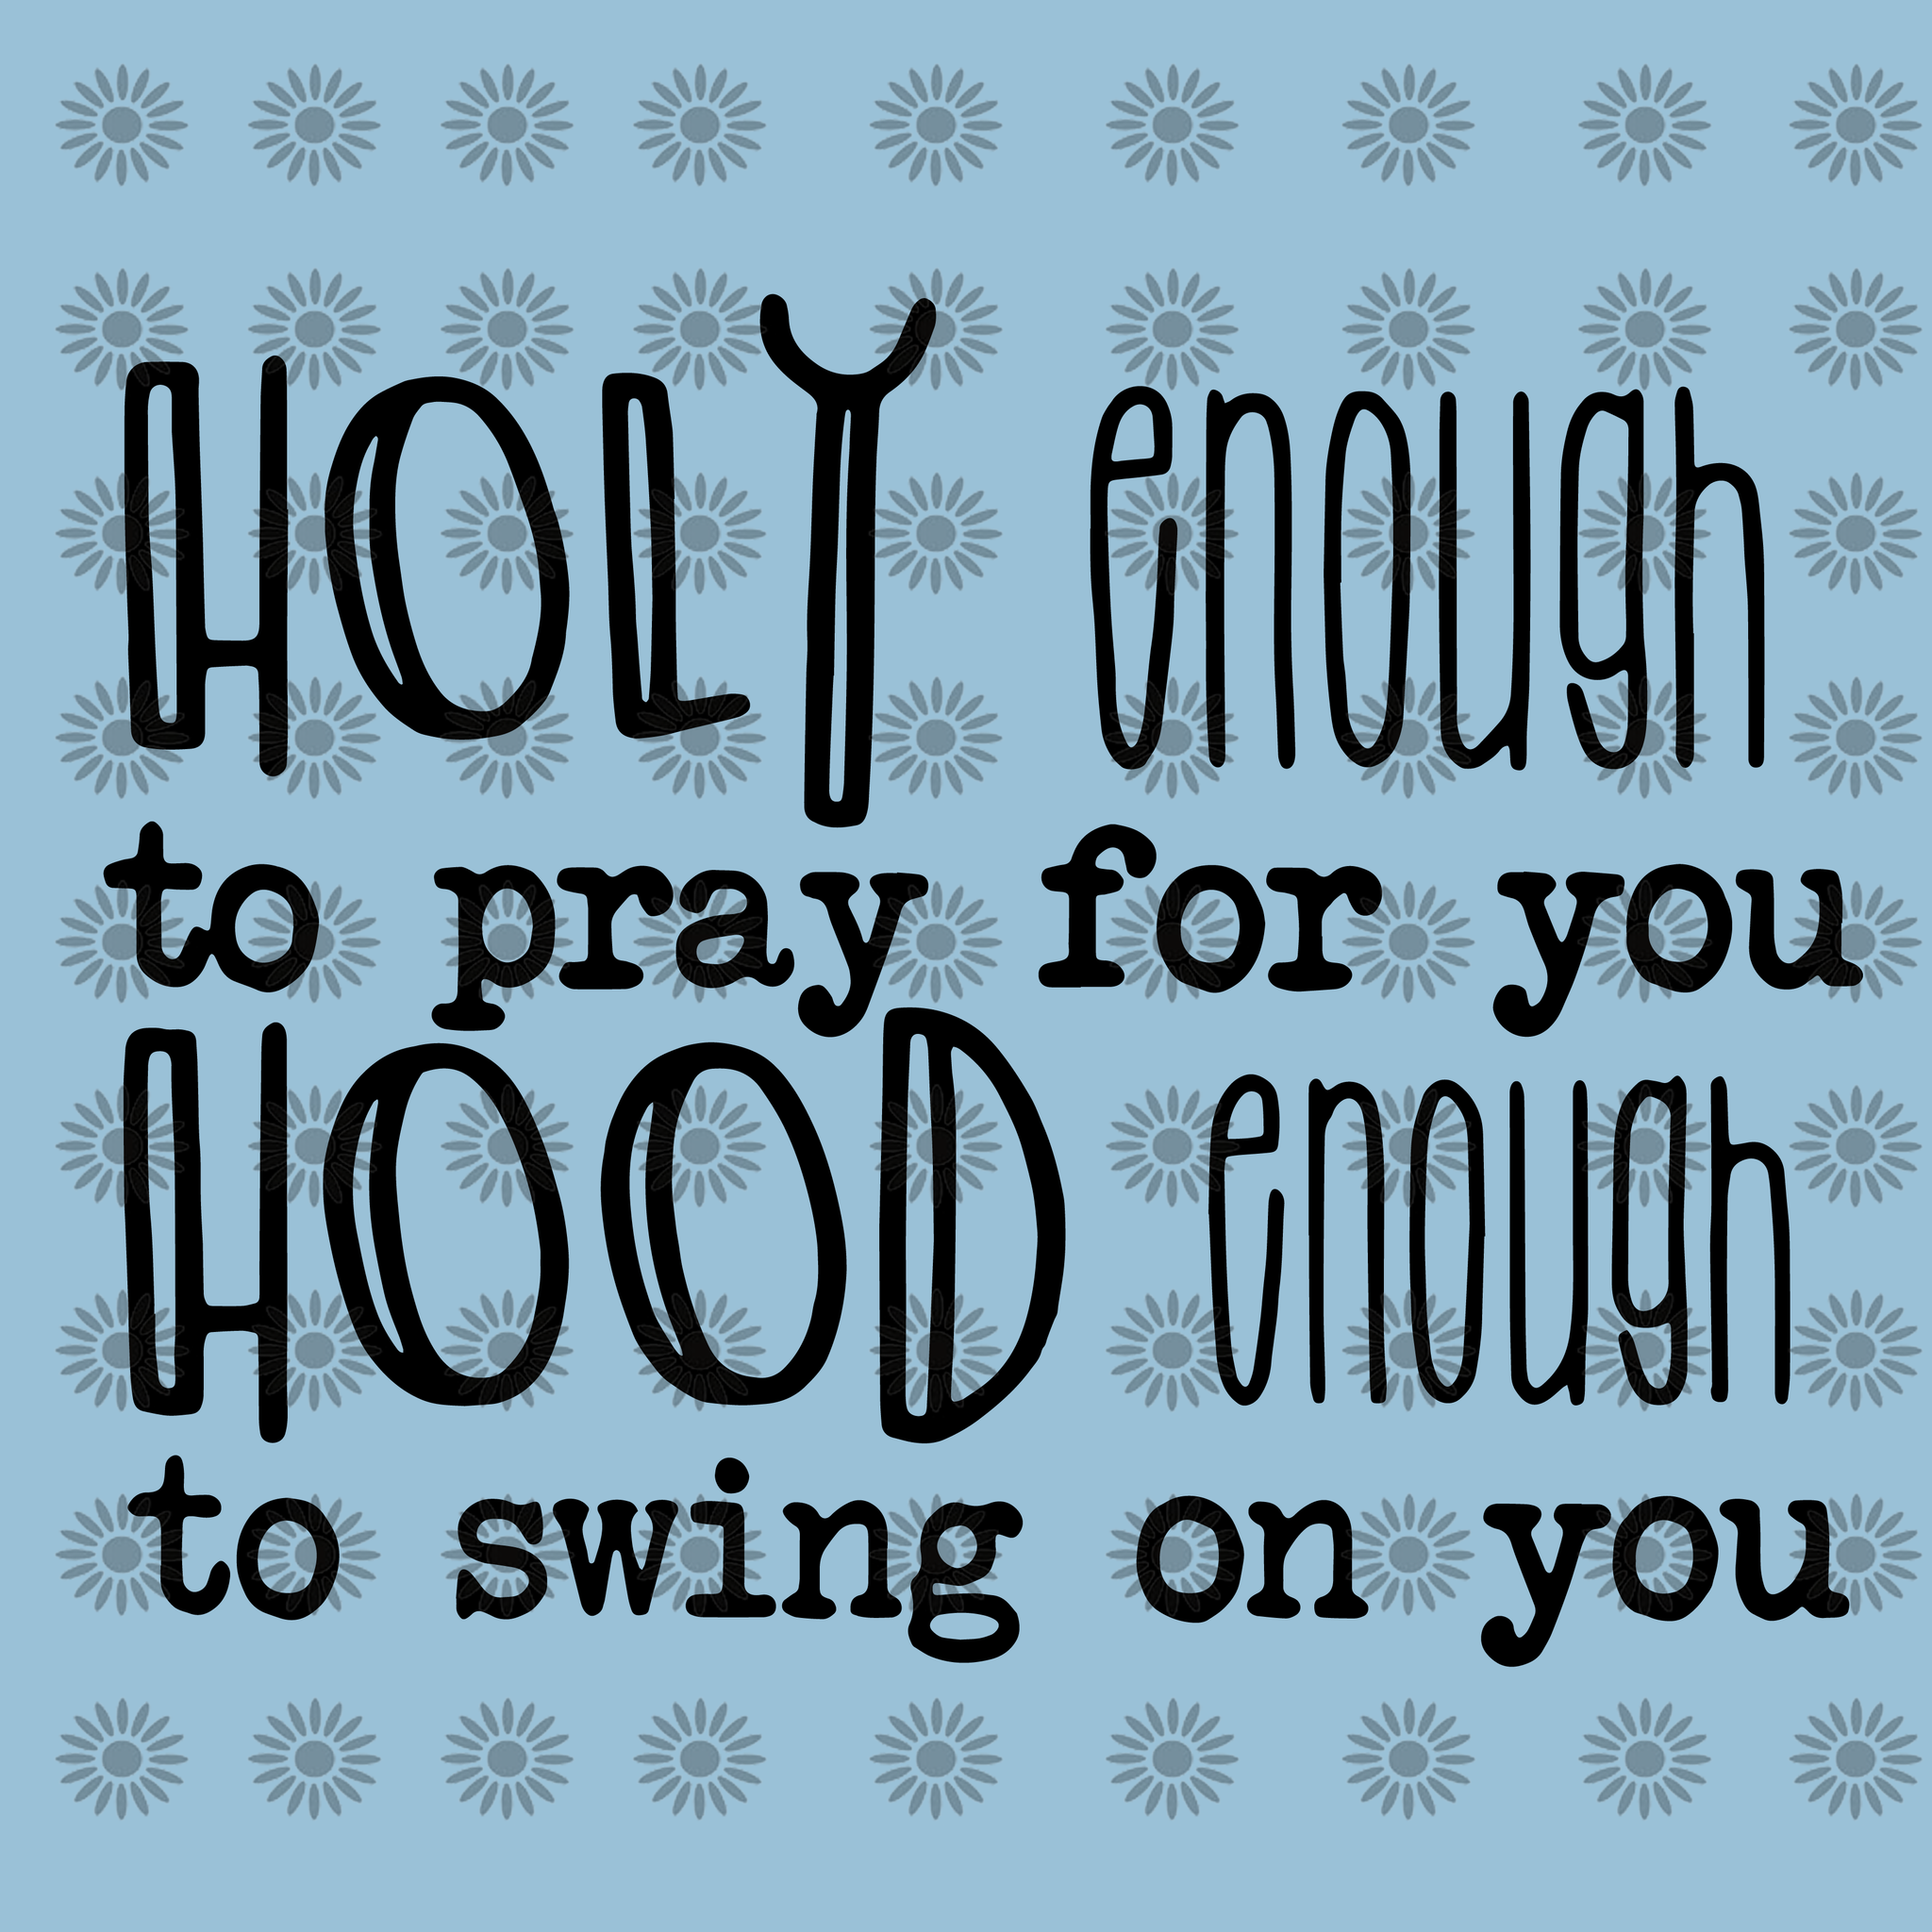 Holy enough to pray for you hood enough to swing on you svg, Holy enough to pray for you hood enough to swing on you, funny quotes svg, png, eps, dxf file